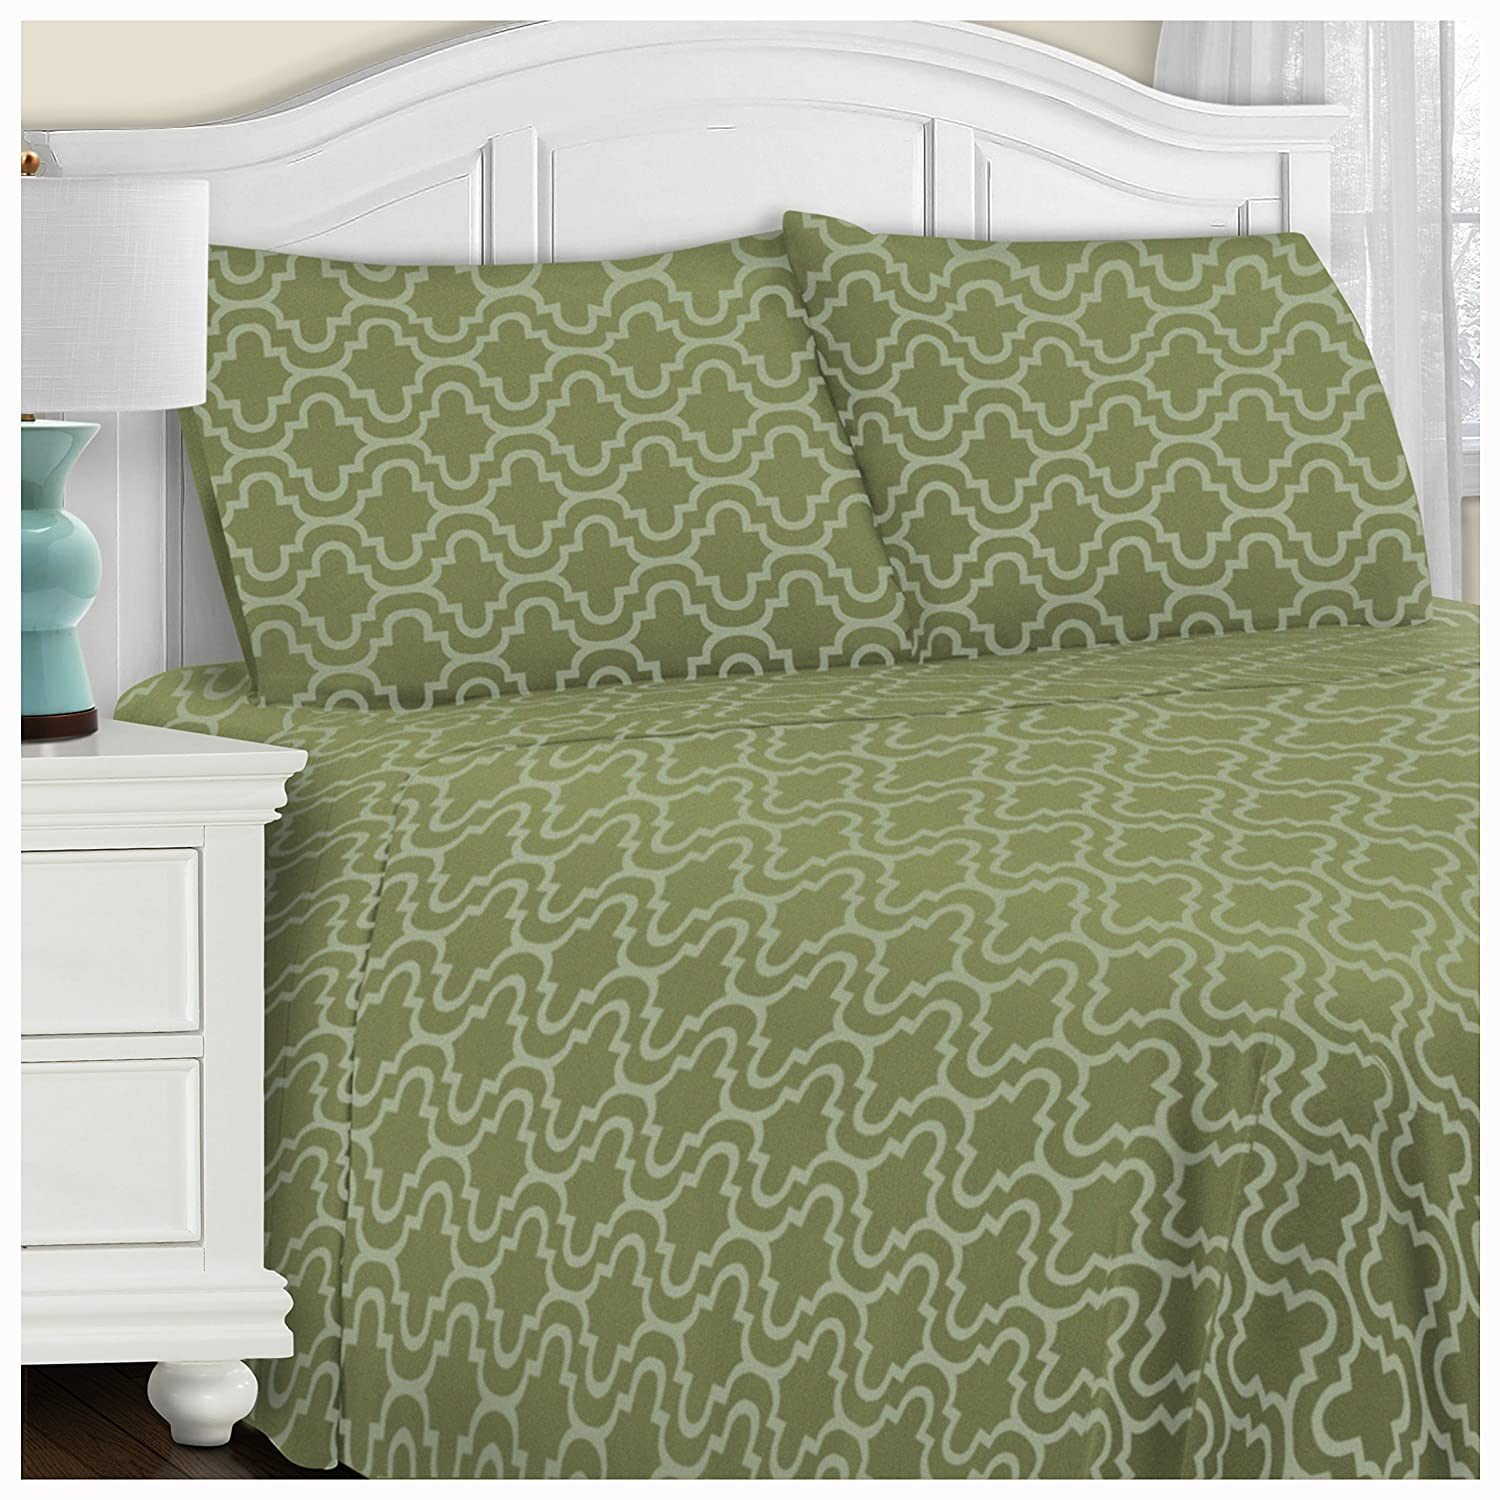 (Twin XL, Sage Trellis) Superior Extra Soft Printed Highest Quality All Season 100% Brushed Cotton Flannel Trellis Bedding Sheet Set with Deep Pockets Fitted Sheet Sage Trellis, Twin XL Size B01N29GPXS Twin XL|Sage Trellis Sage Trellis Twin XL